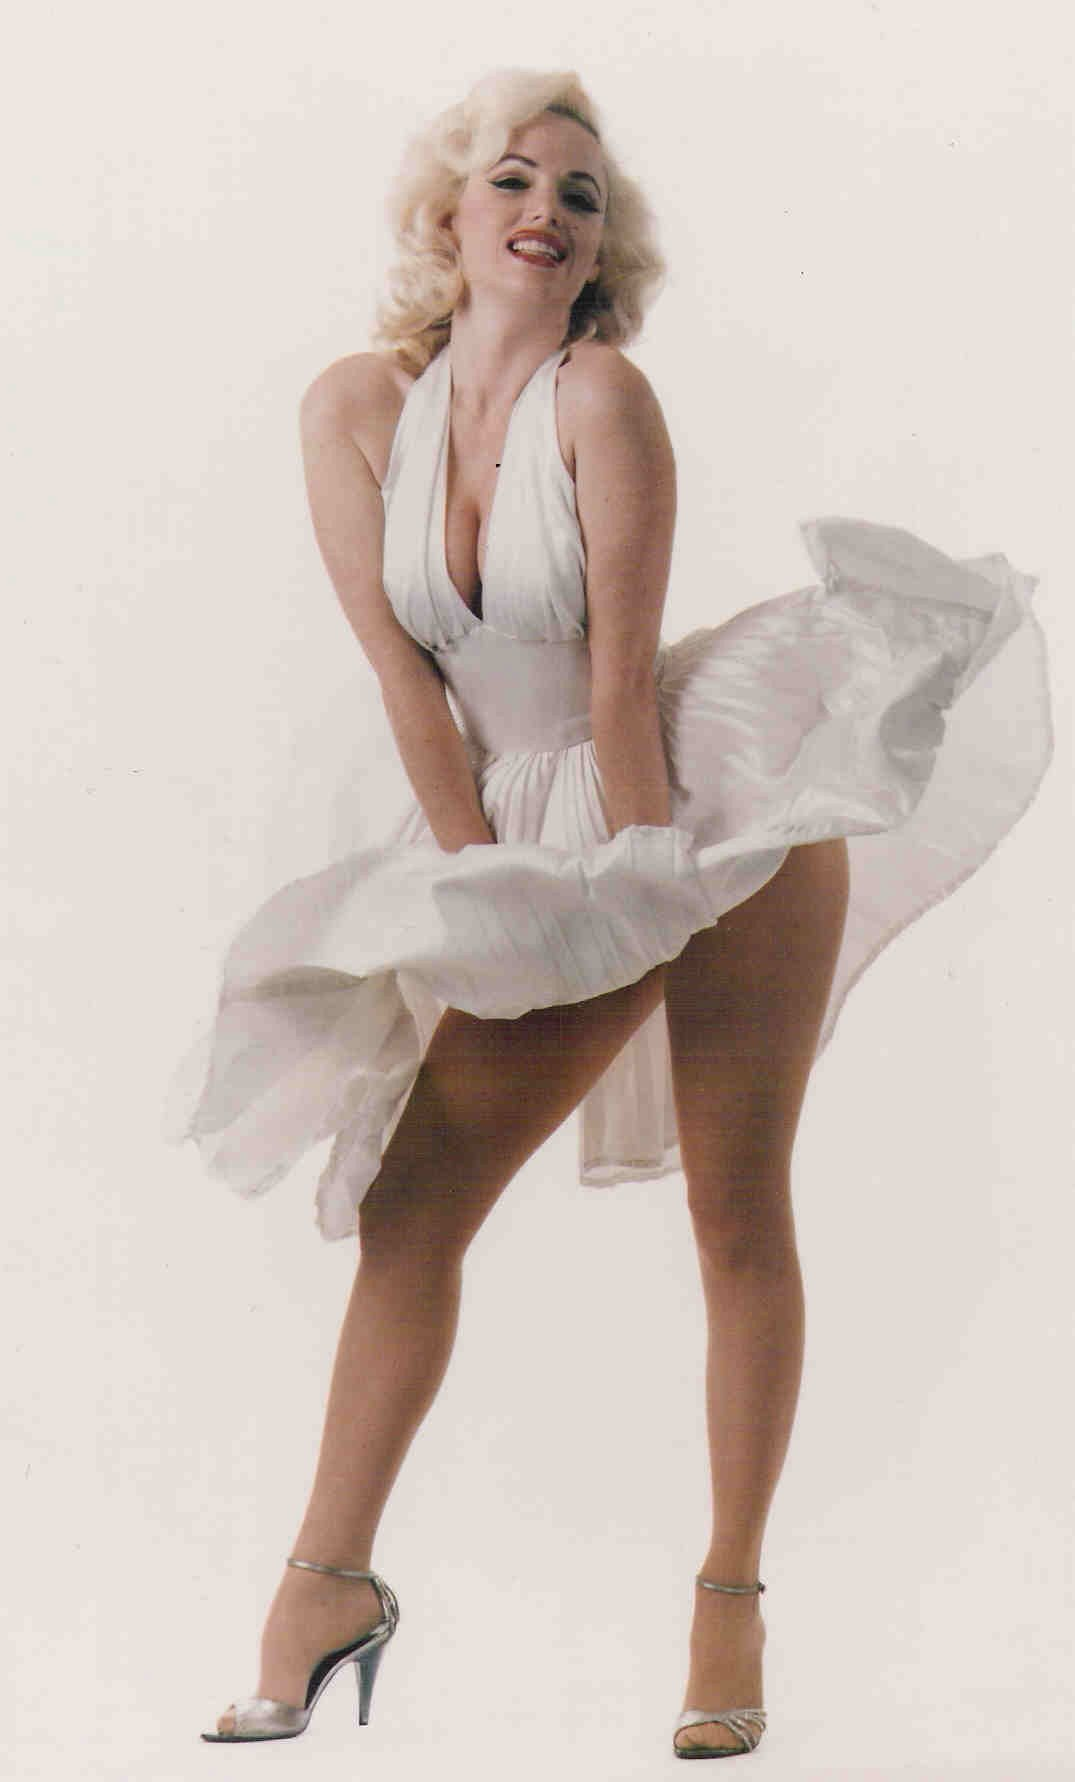 Prop Cutout Marilyn Monroe 1.6m x 0.8m $25 incl stand and gst